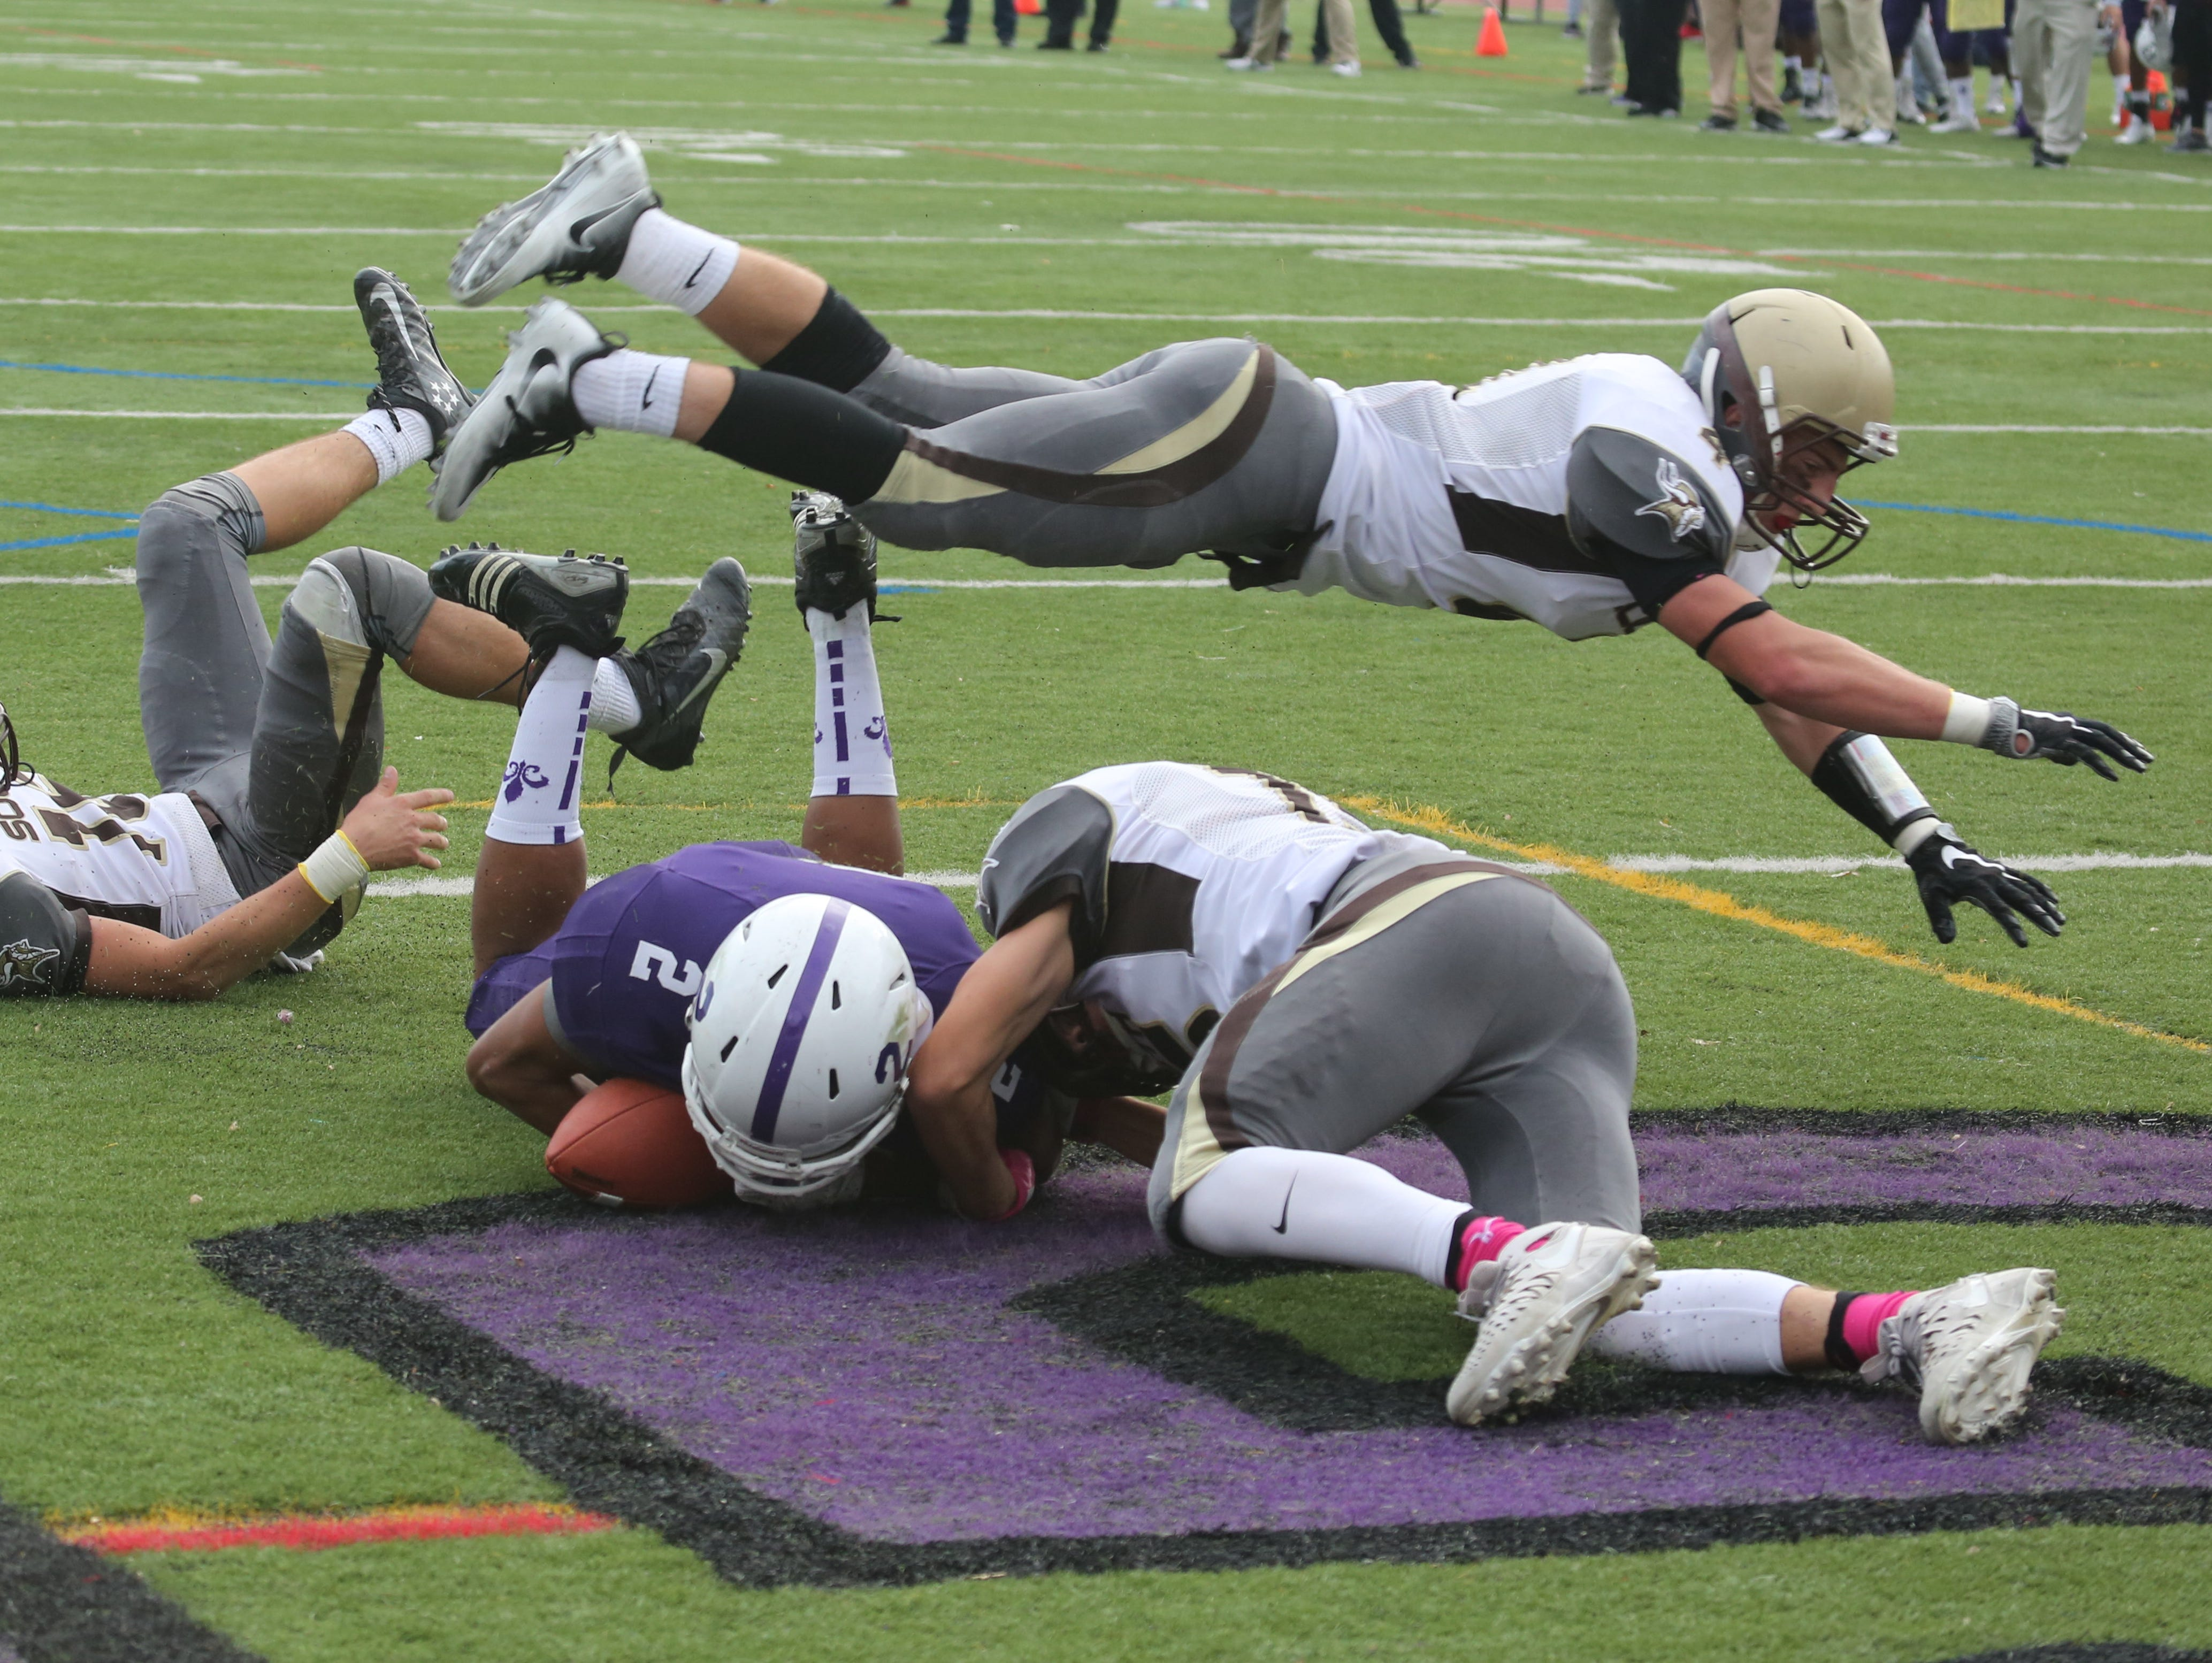 New Rochelle's Romeo Holden's pass is incomplete in the end zone as Clarkstown South players go flying during their Class AA semifinal in New Rochelle Oct. 29, 2016.